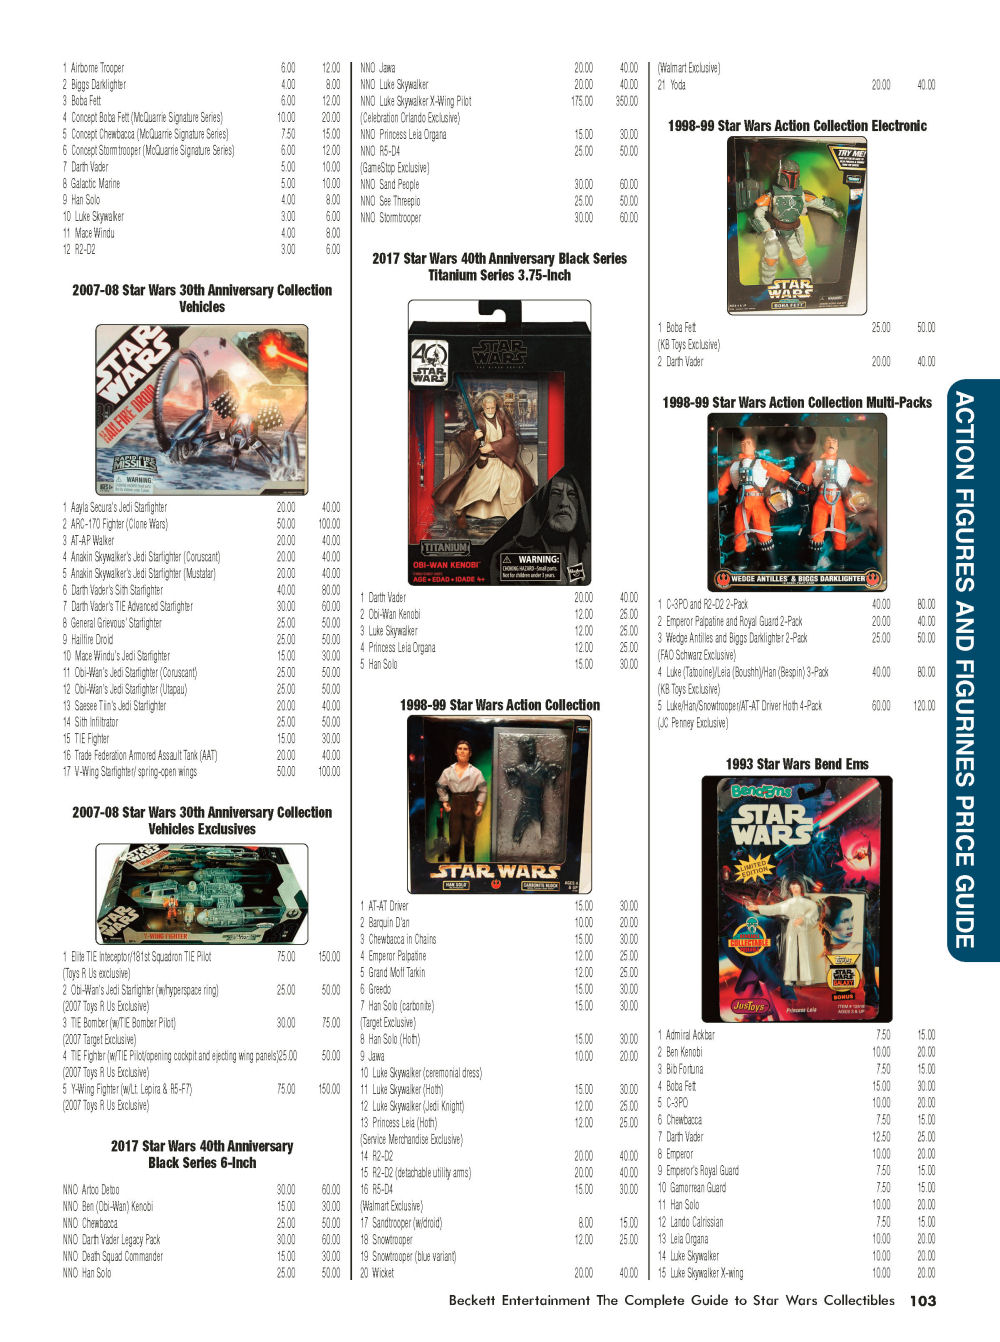 Star wars toy collectors price guide.